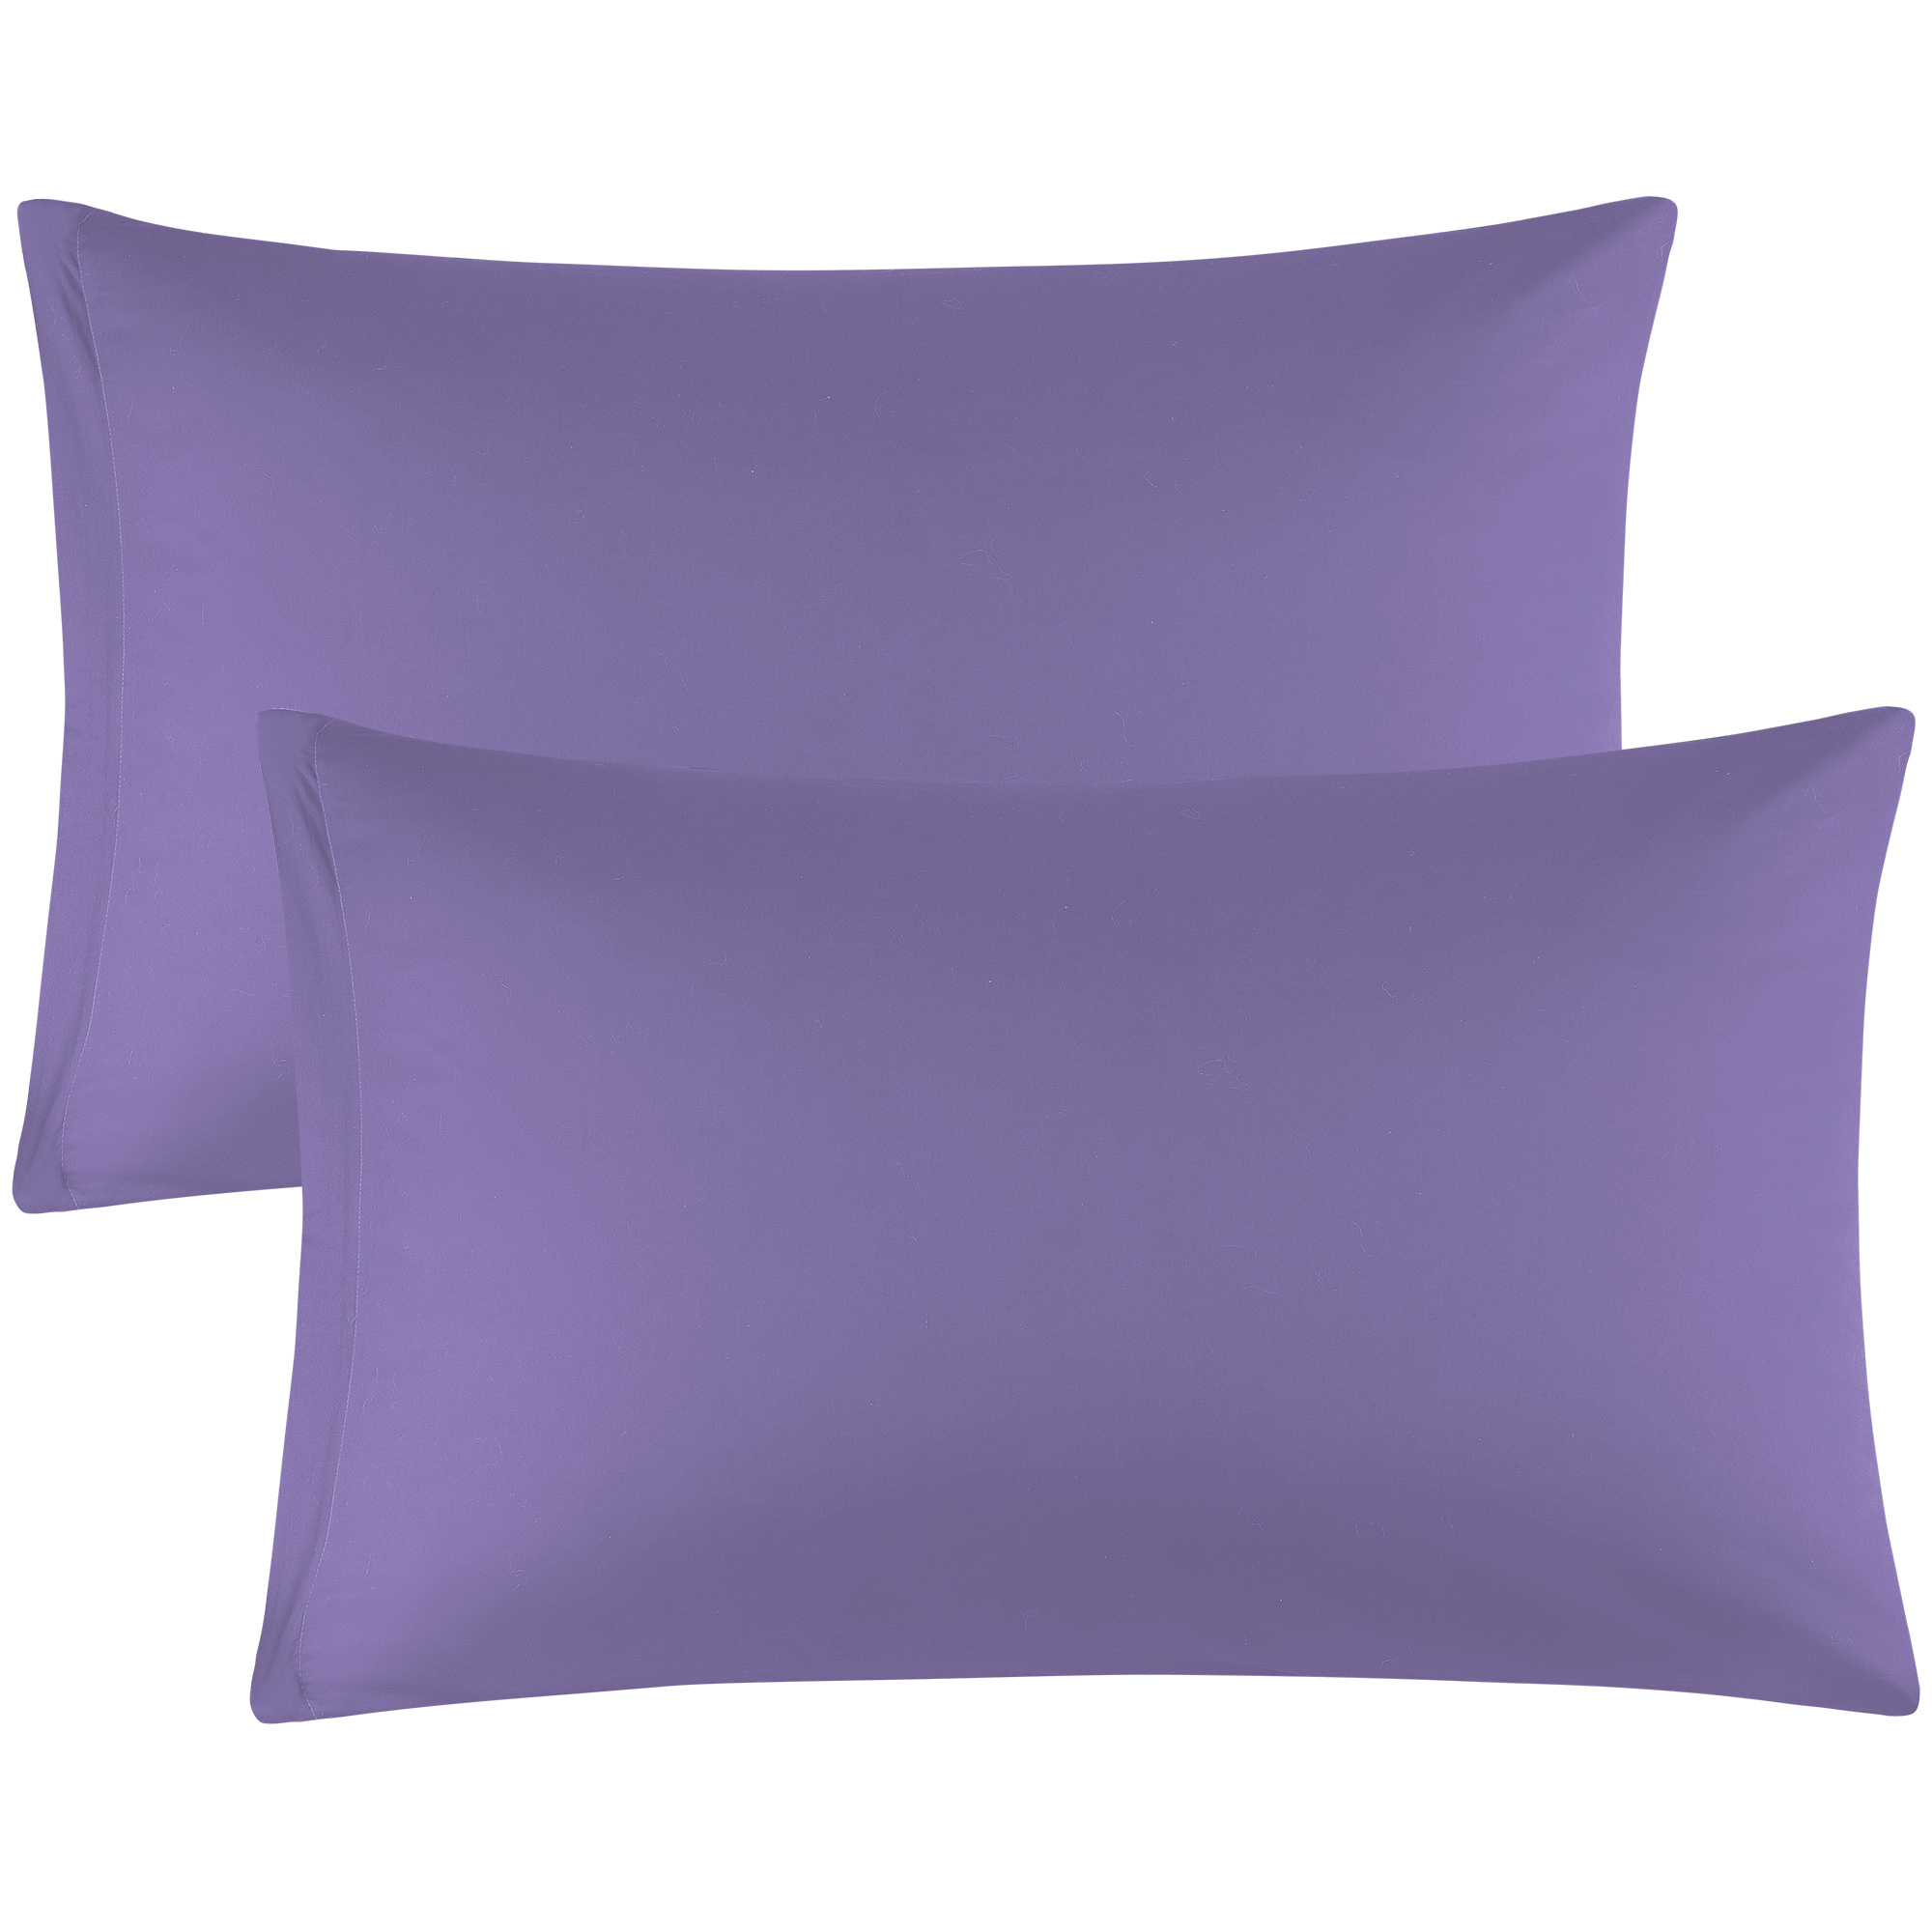 Zippered Pillow Cases Pillowcases Egyptian Cotton (20 x 36 Inch, Purple) 2-Pack